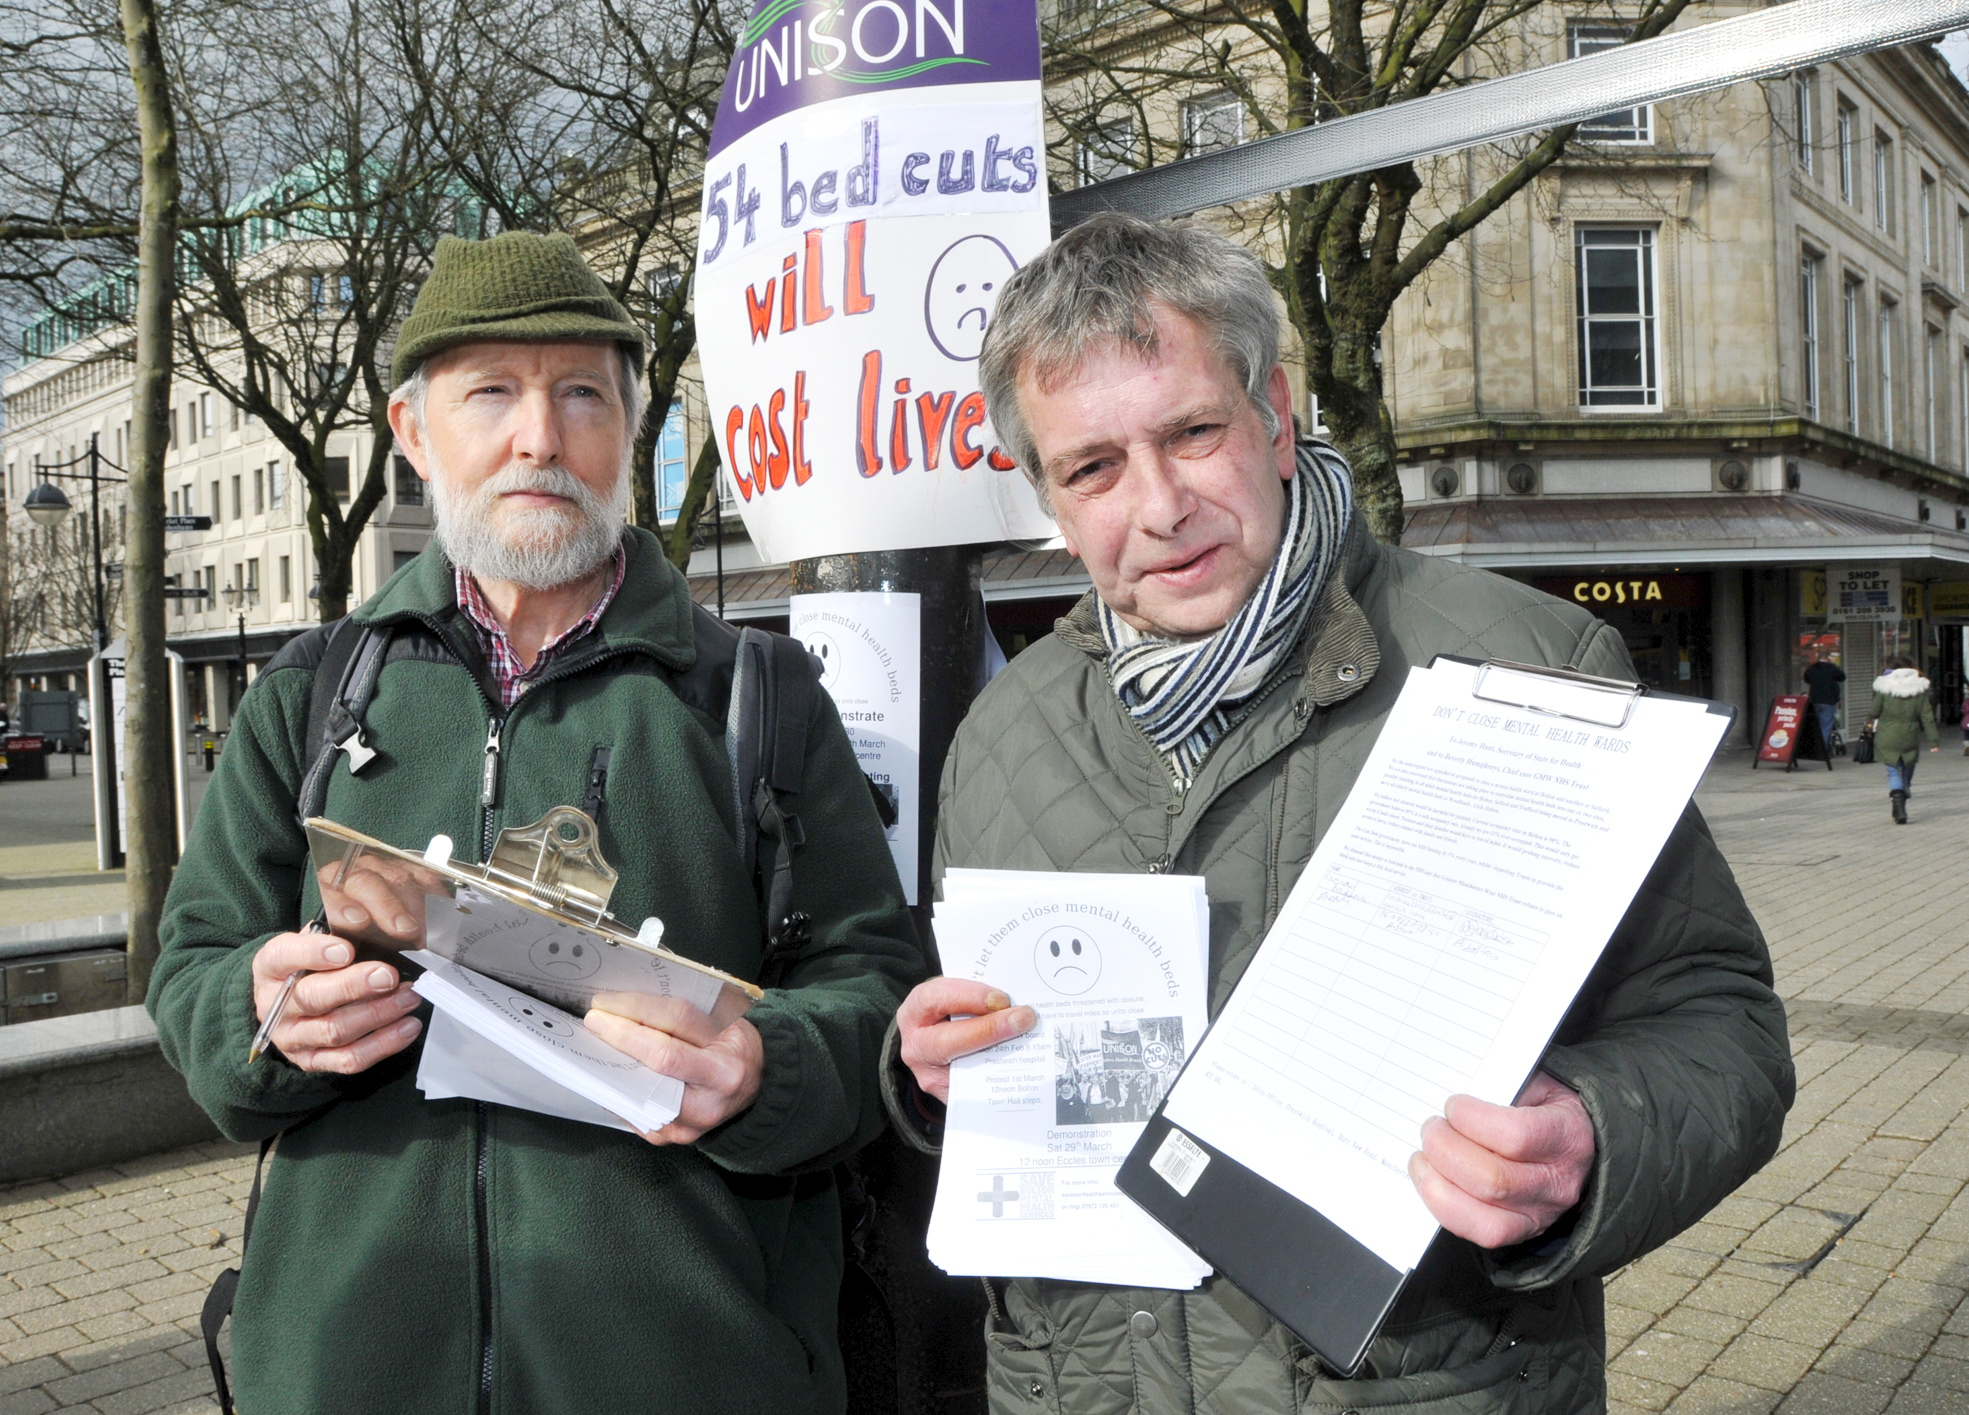 Town centre protest: 'Save our threatened mental health beds'